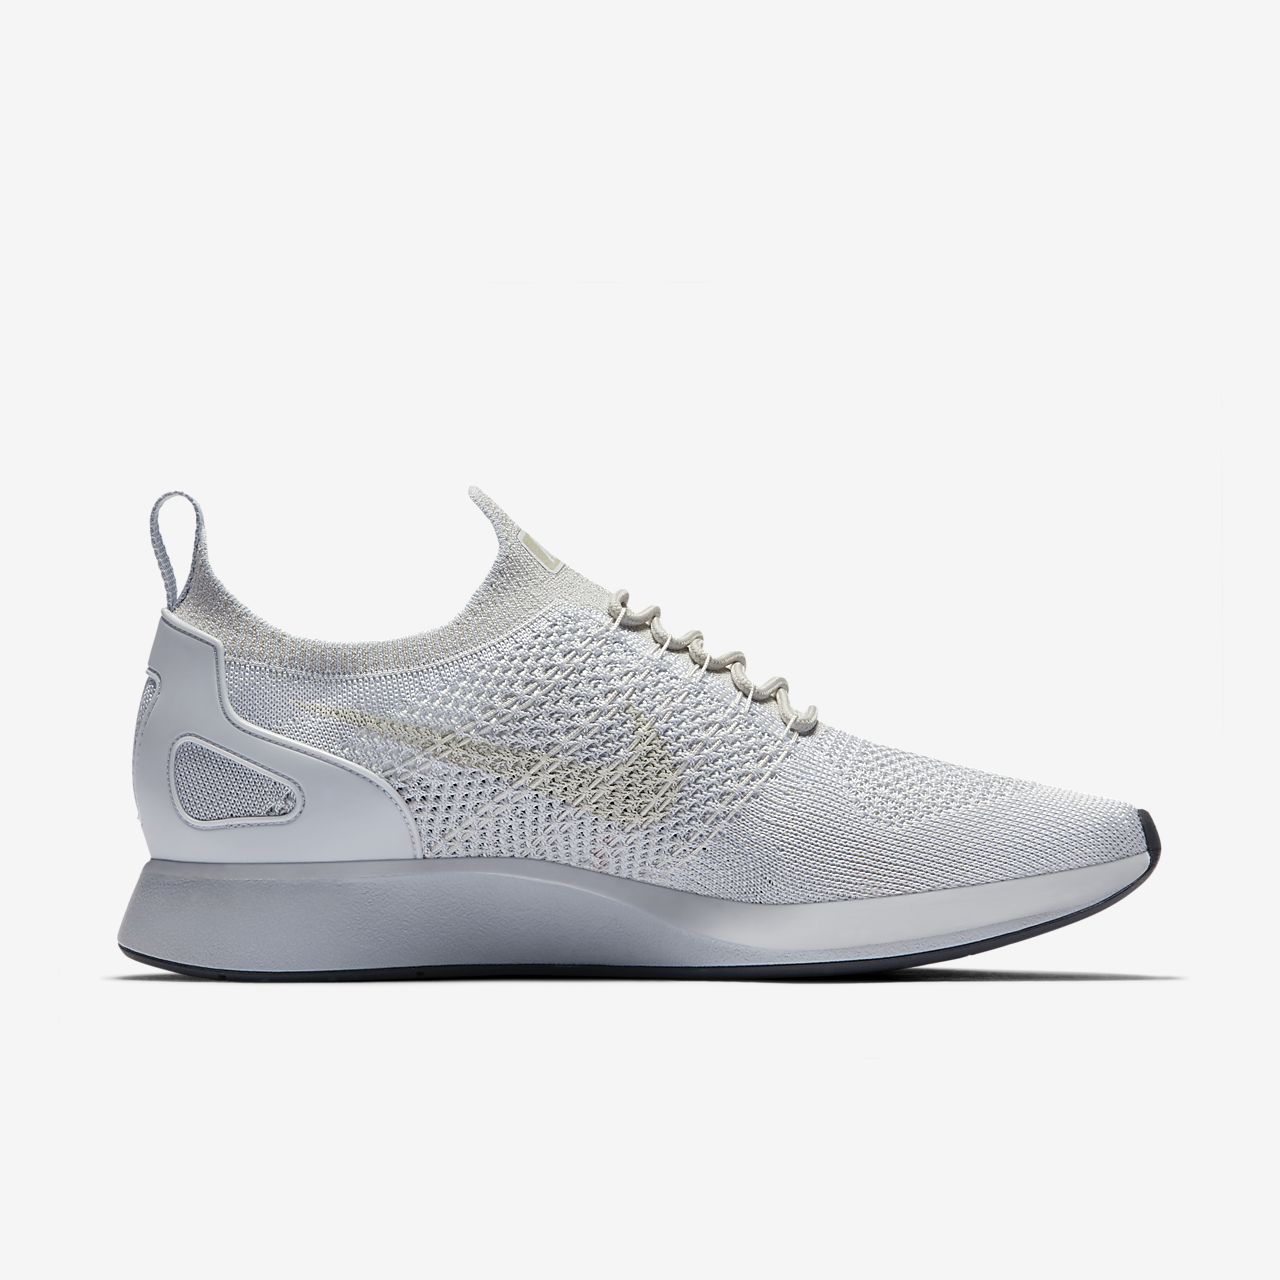 ... Nike Air Zoom Mariah Flyknit Racer Men's Shoe